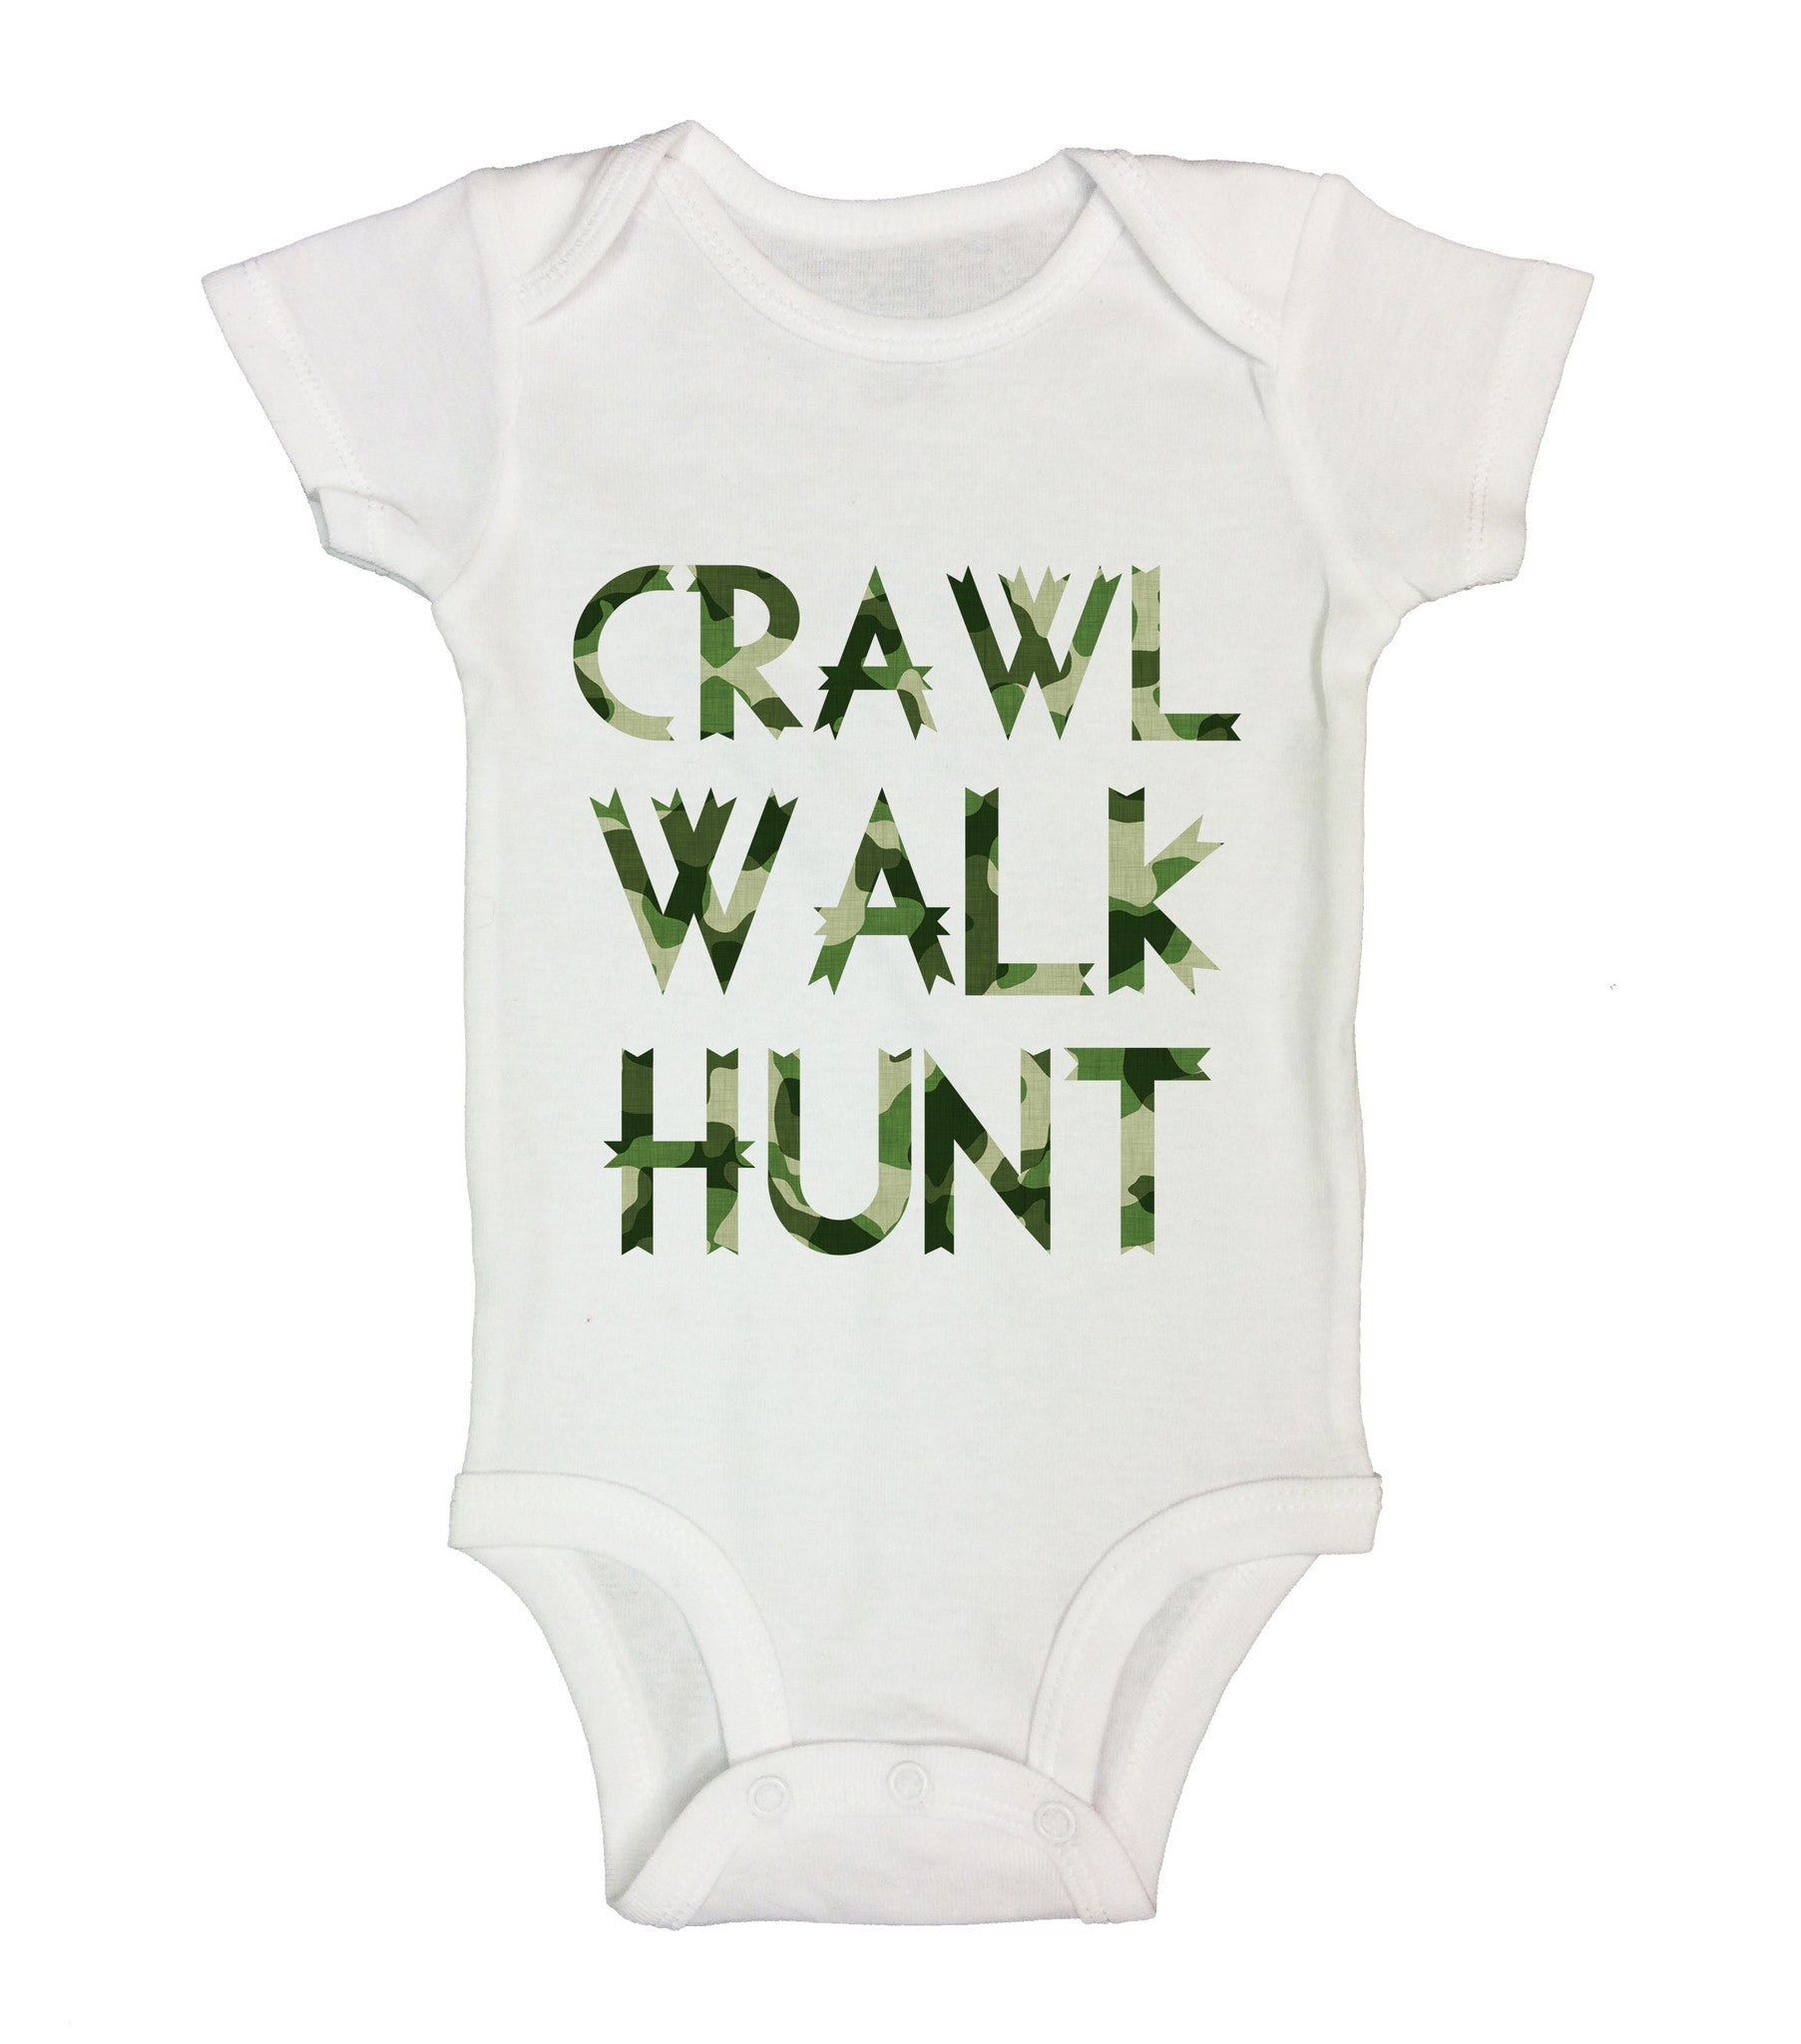 Crawl Walk Hunt Funny Kids Onesie - B206 - Funny Shirts Tank Tops Burnouts and Triblends  - 2